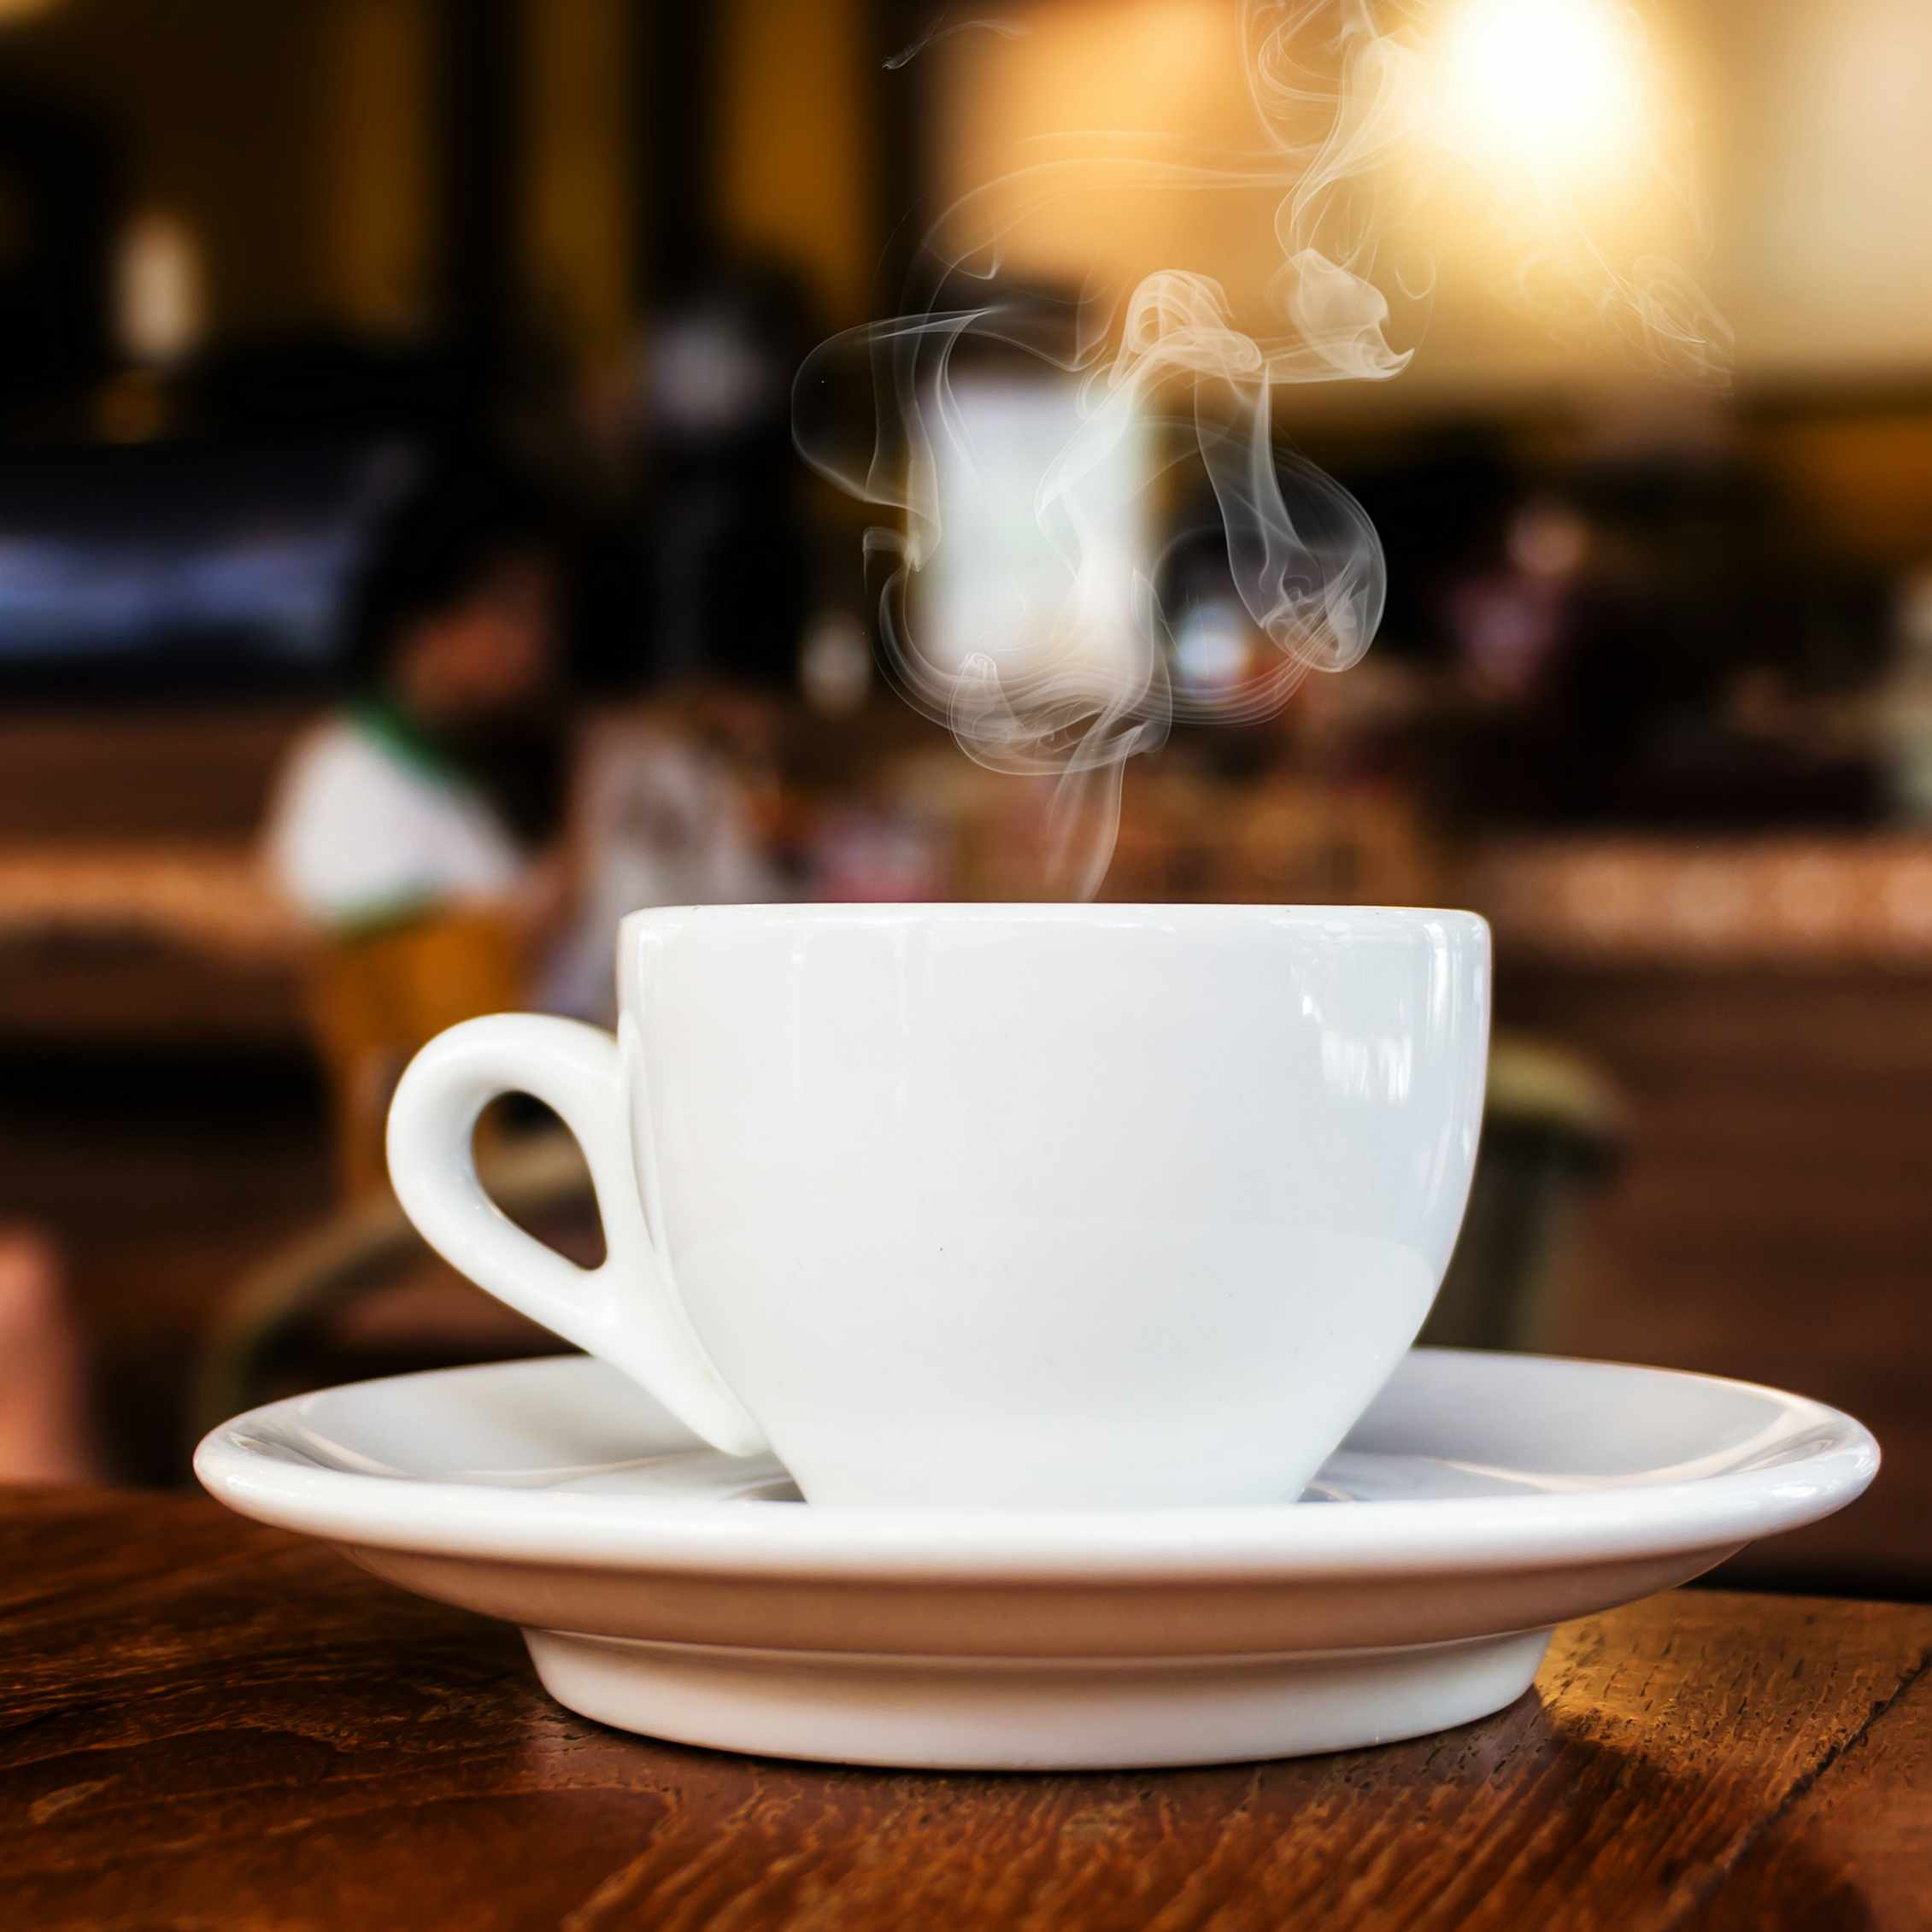 a cup of coffee or tea sitting on a wood table